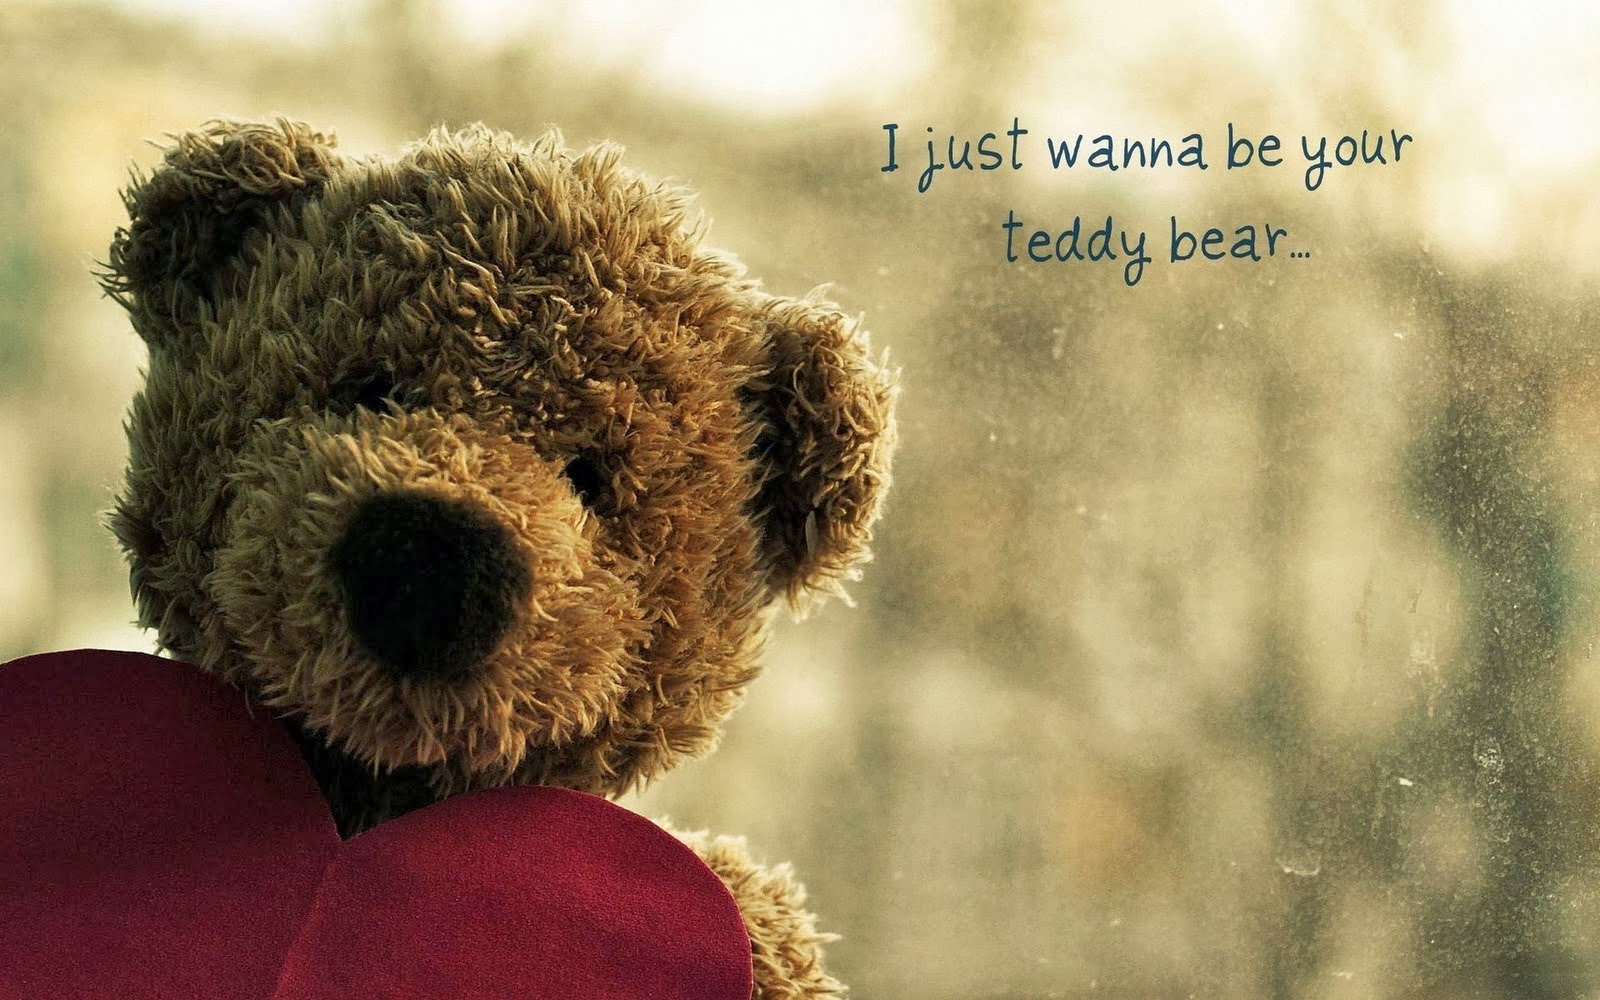 i-wanna-be-your-teddy-bear-text-hd-wallpaper.jpg